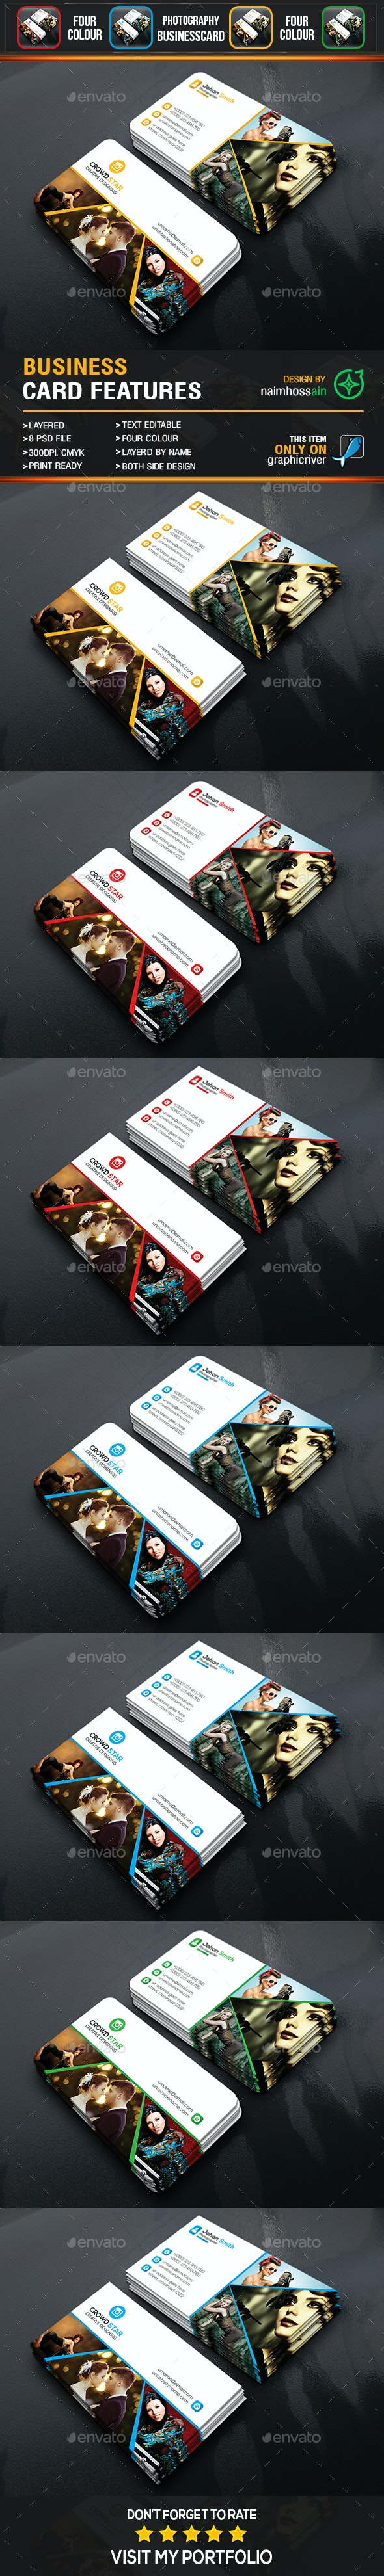 Smart Photography Business Card - Business Cards Print Templates